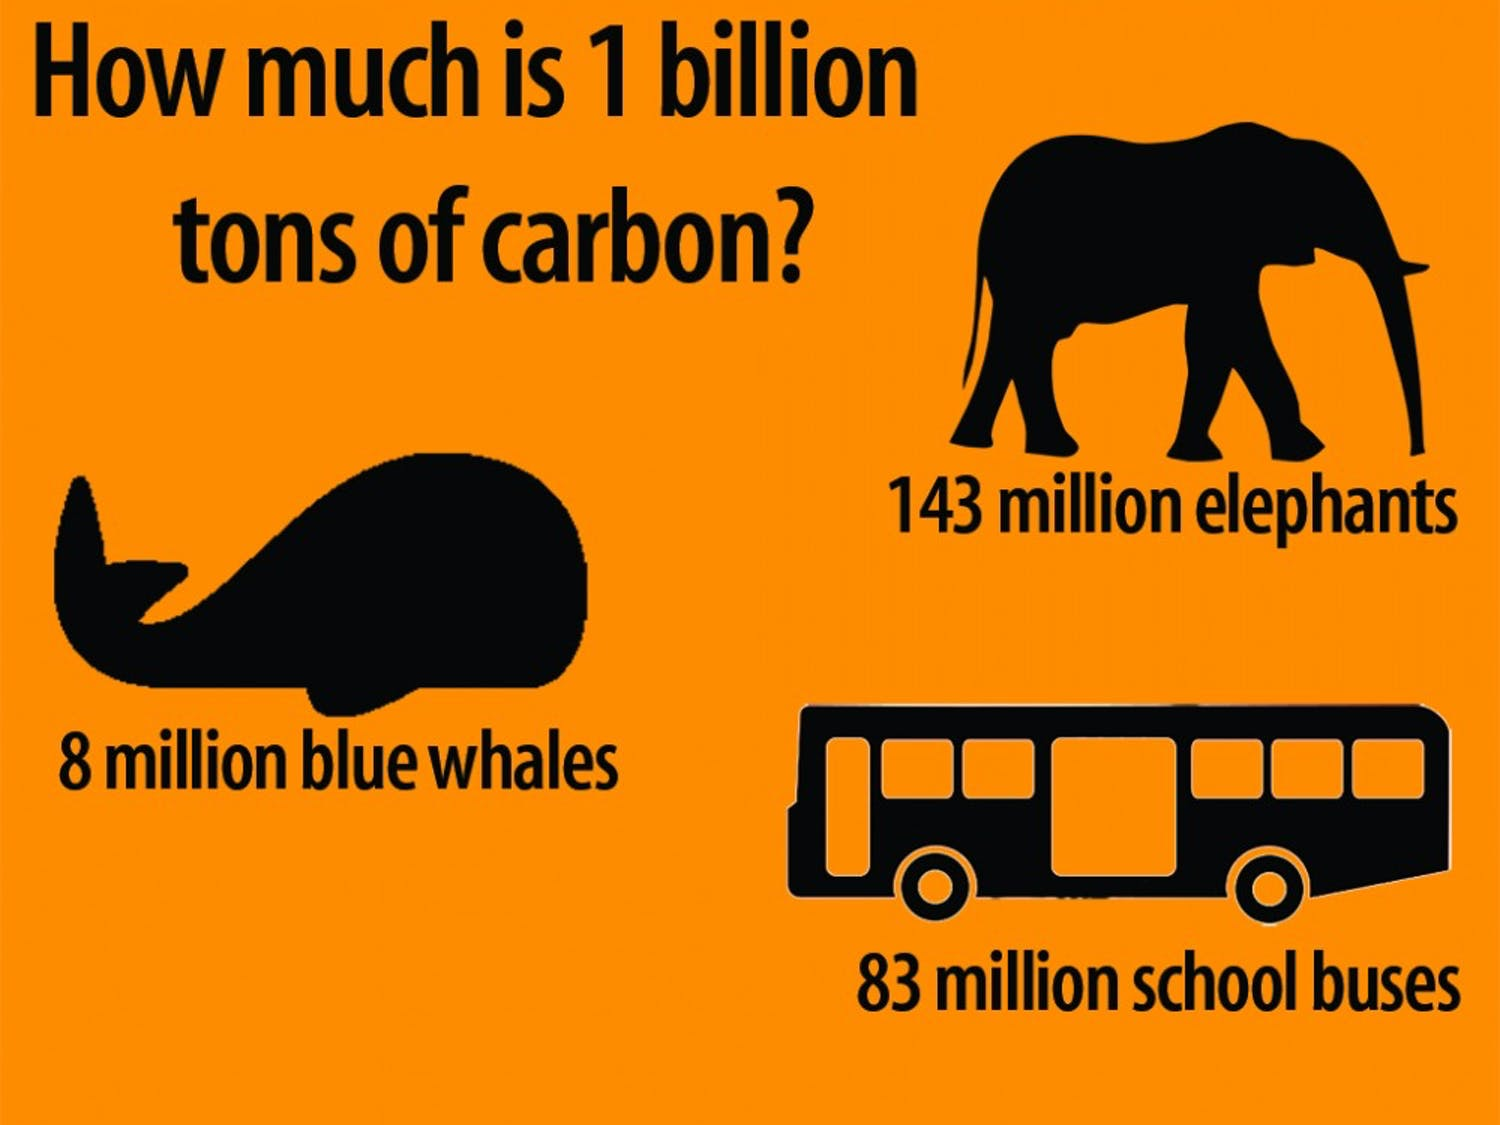 A recent study found that destroying coastal habitats might release 1 billion tons of carbon into the atmosphere. One billion tons of carbon is equal to the weight of 8 million blue whales, 83 million buses and 143 million elephants.